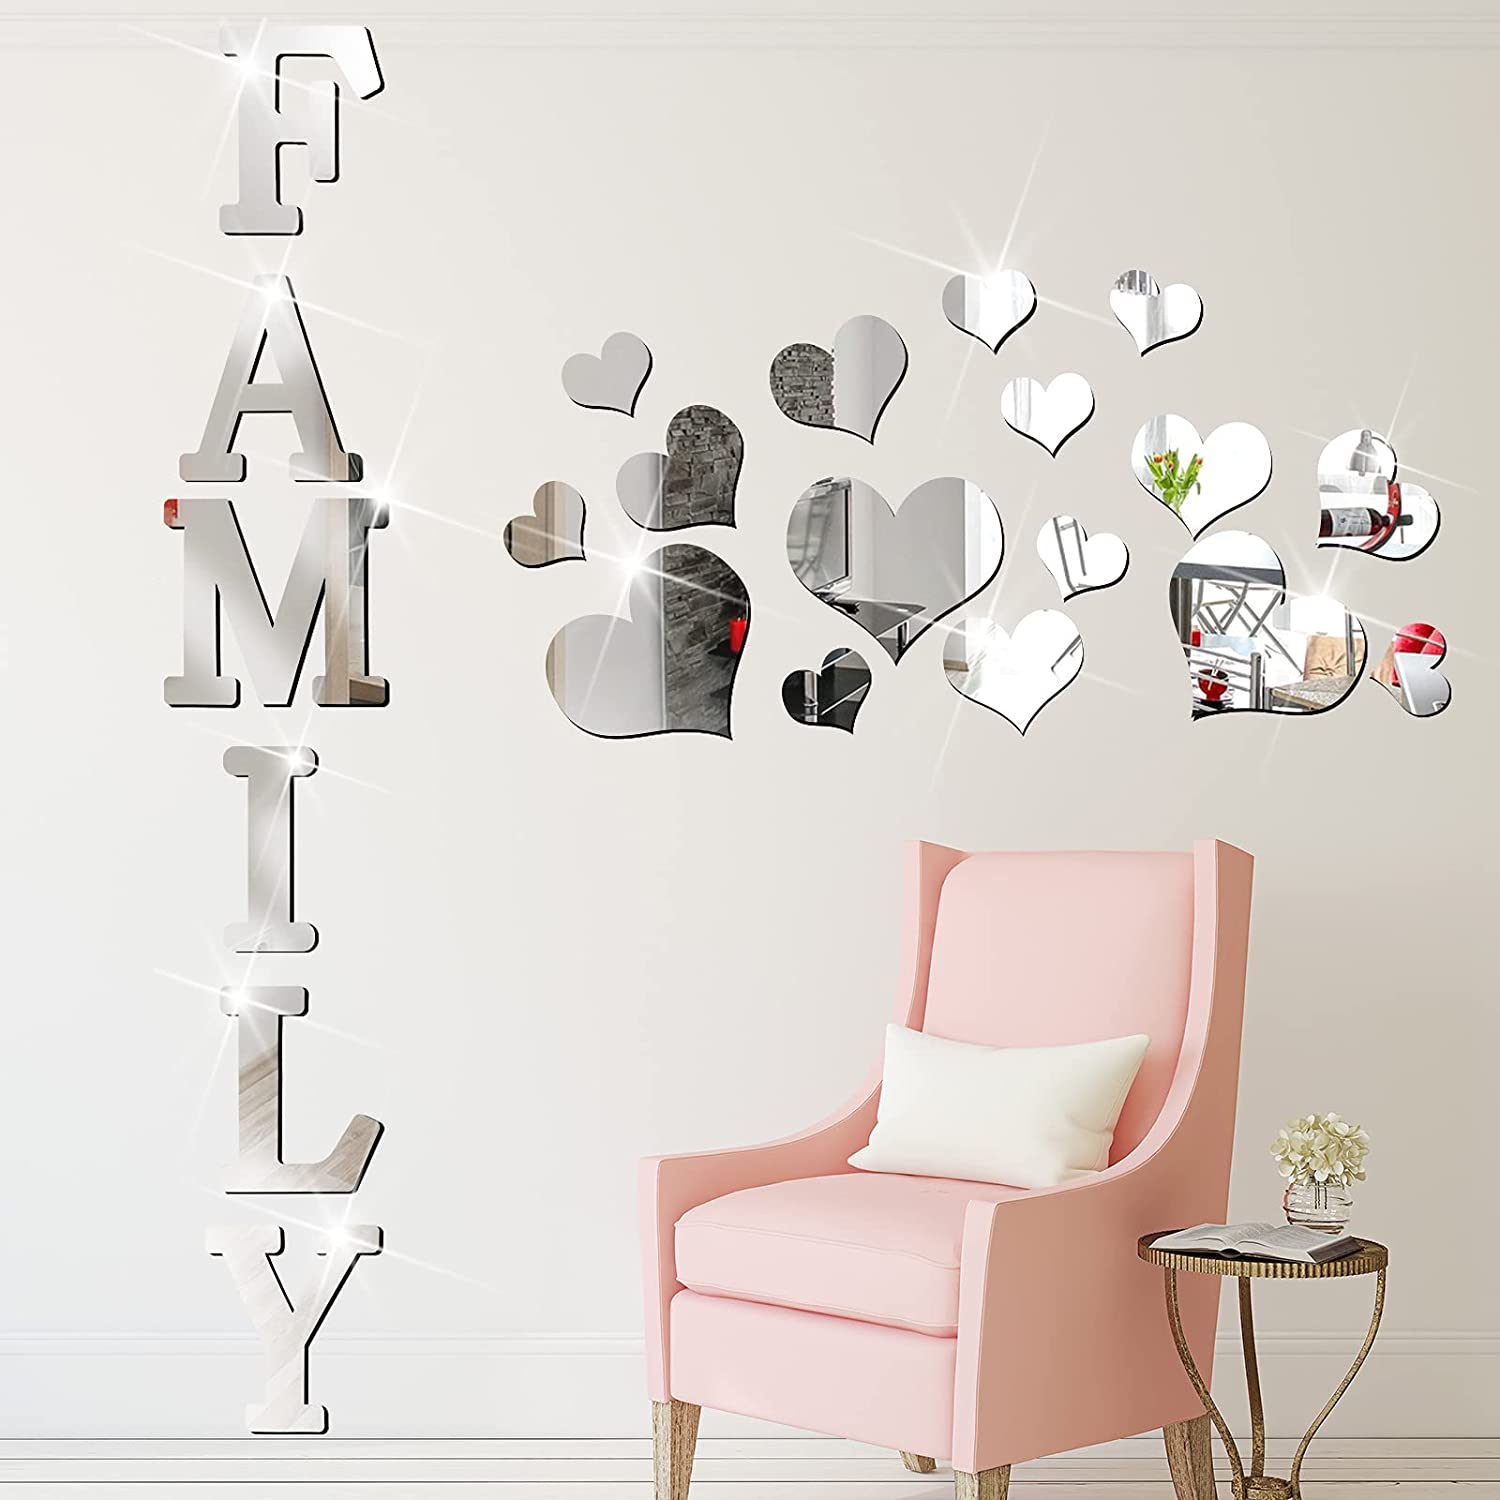 21 Pieces Acrylic Mirror Wall Decor Stickers Include Family Letter Sign Wall Stickers and Heart Shaped 3D Mirror Decals Removable DIY Mirror Wall Stickers for Home Living Room Bedroom Farmhouse Decor